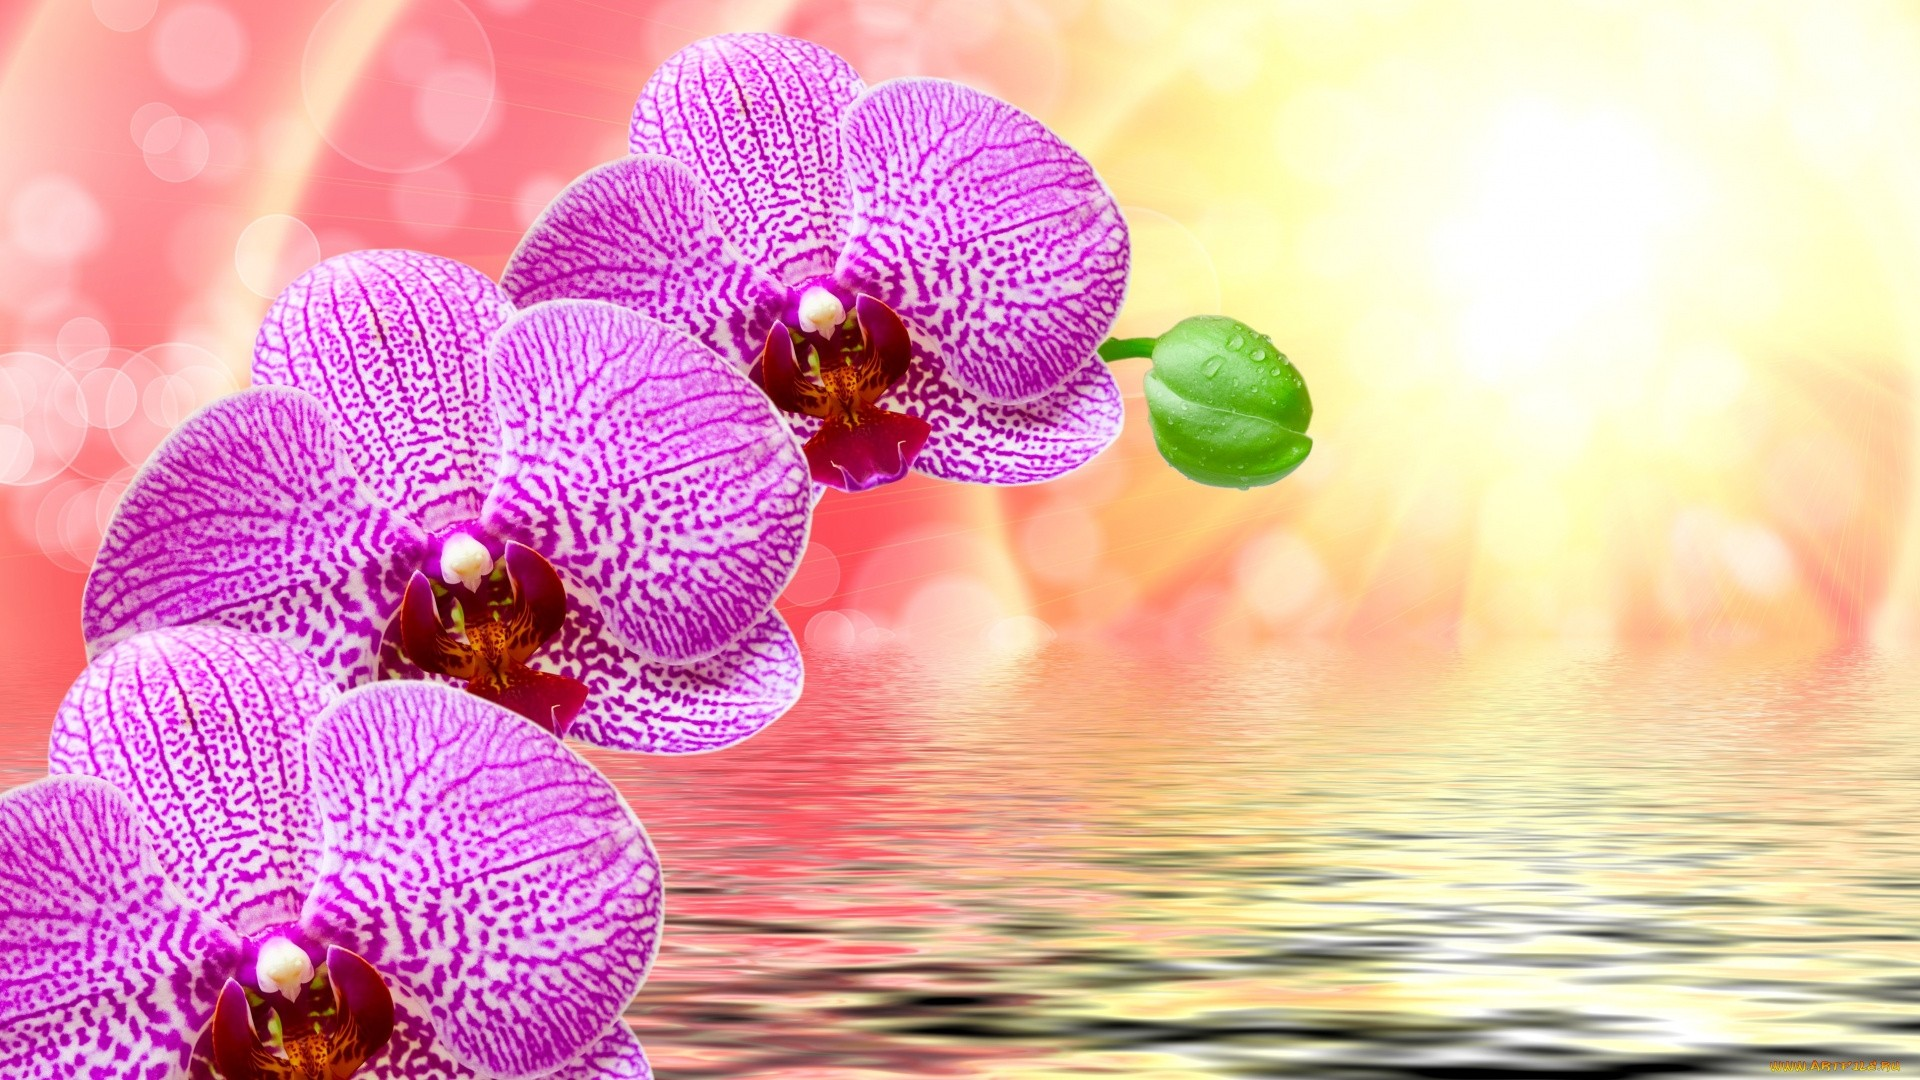 Orchid PC Wallpaper